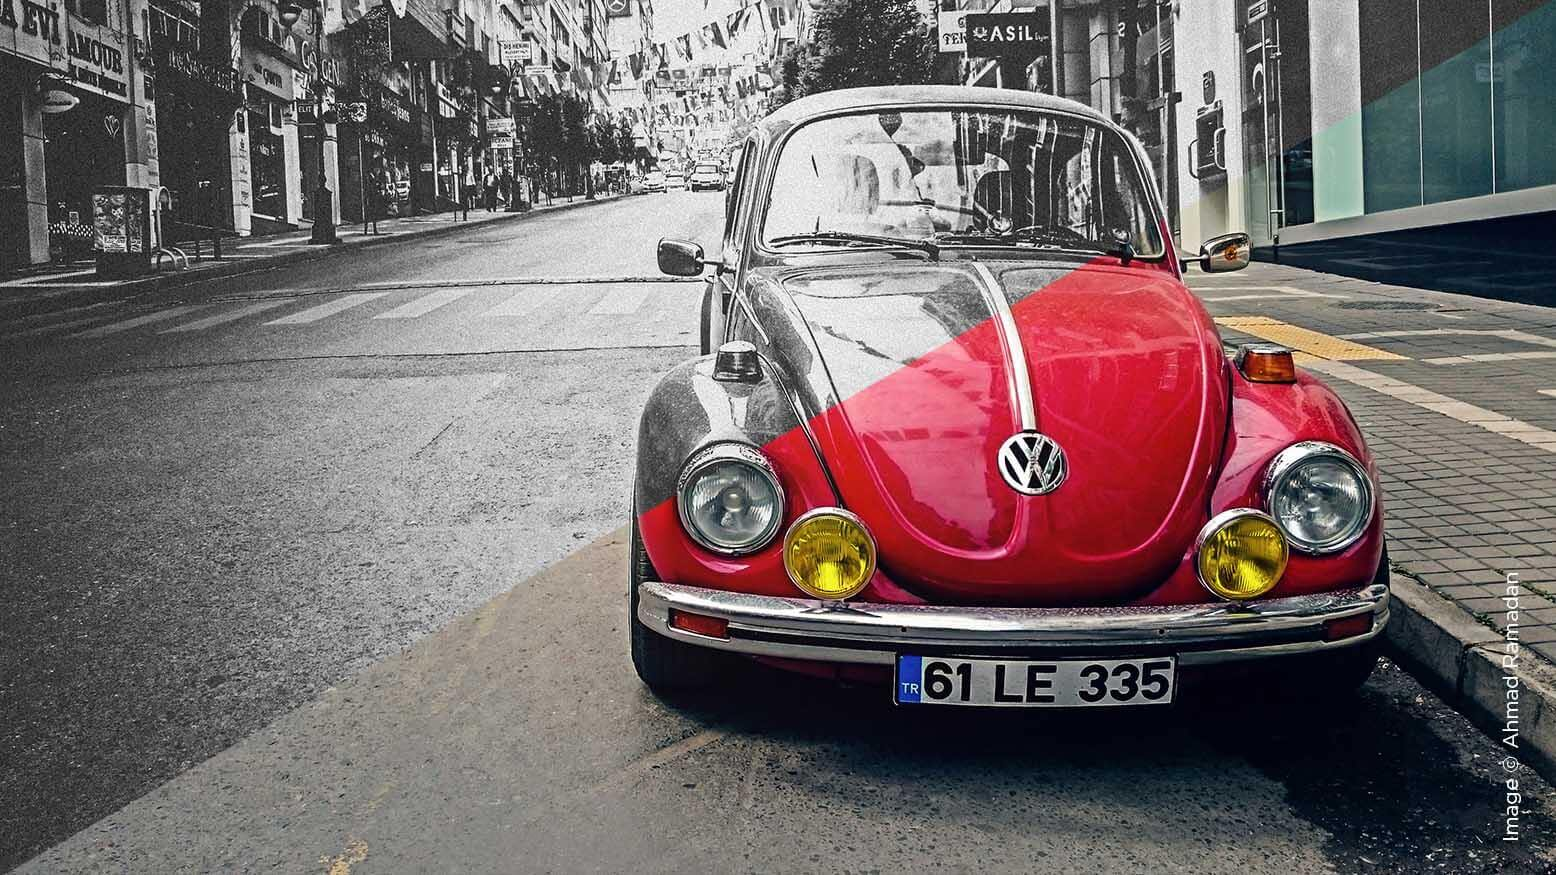 Using Selective Color to Create Black & White Images in Photoshop